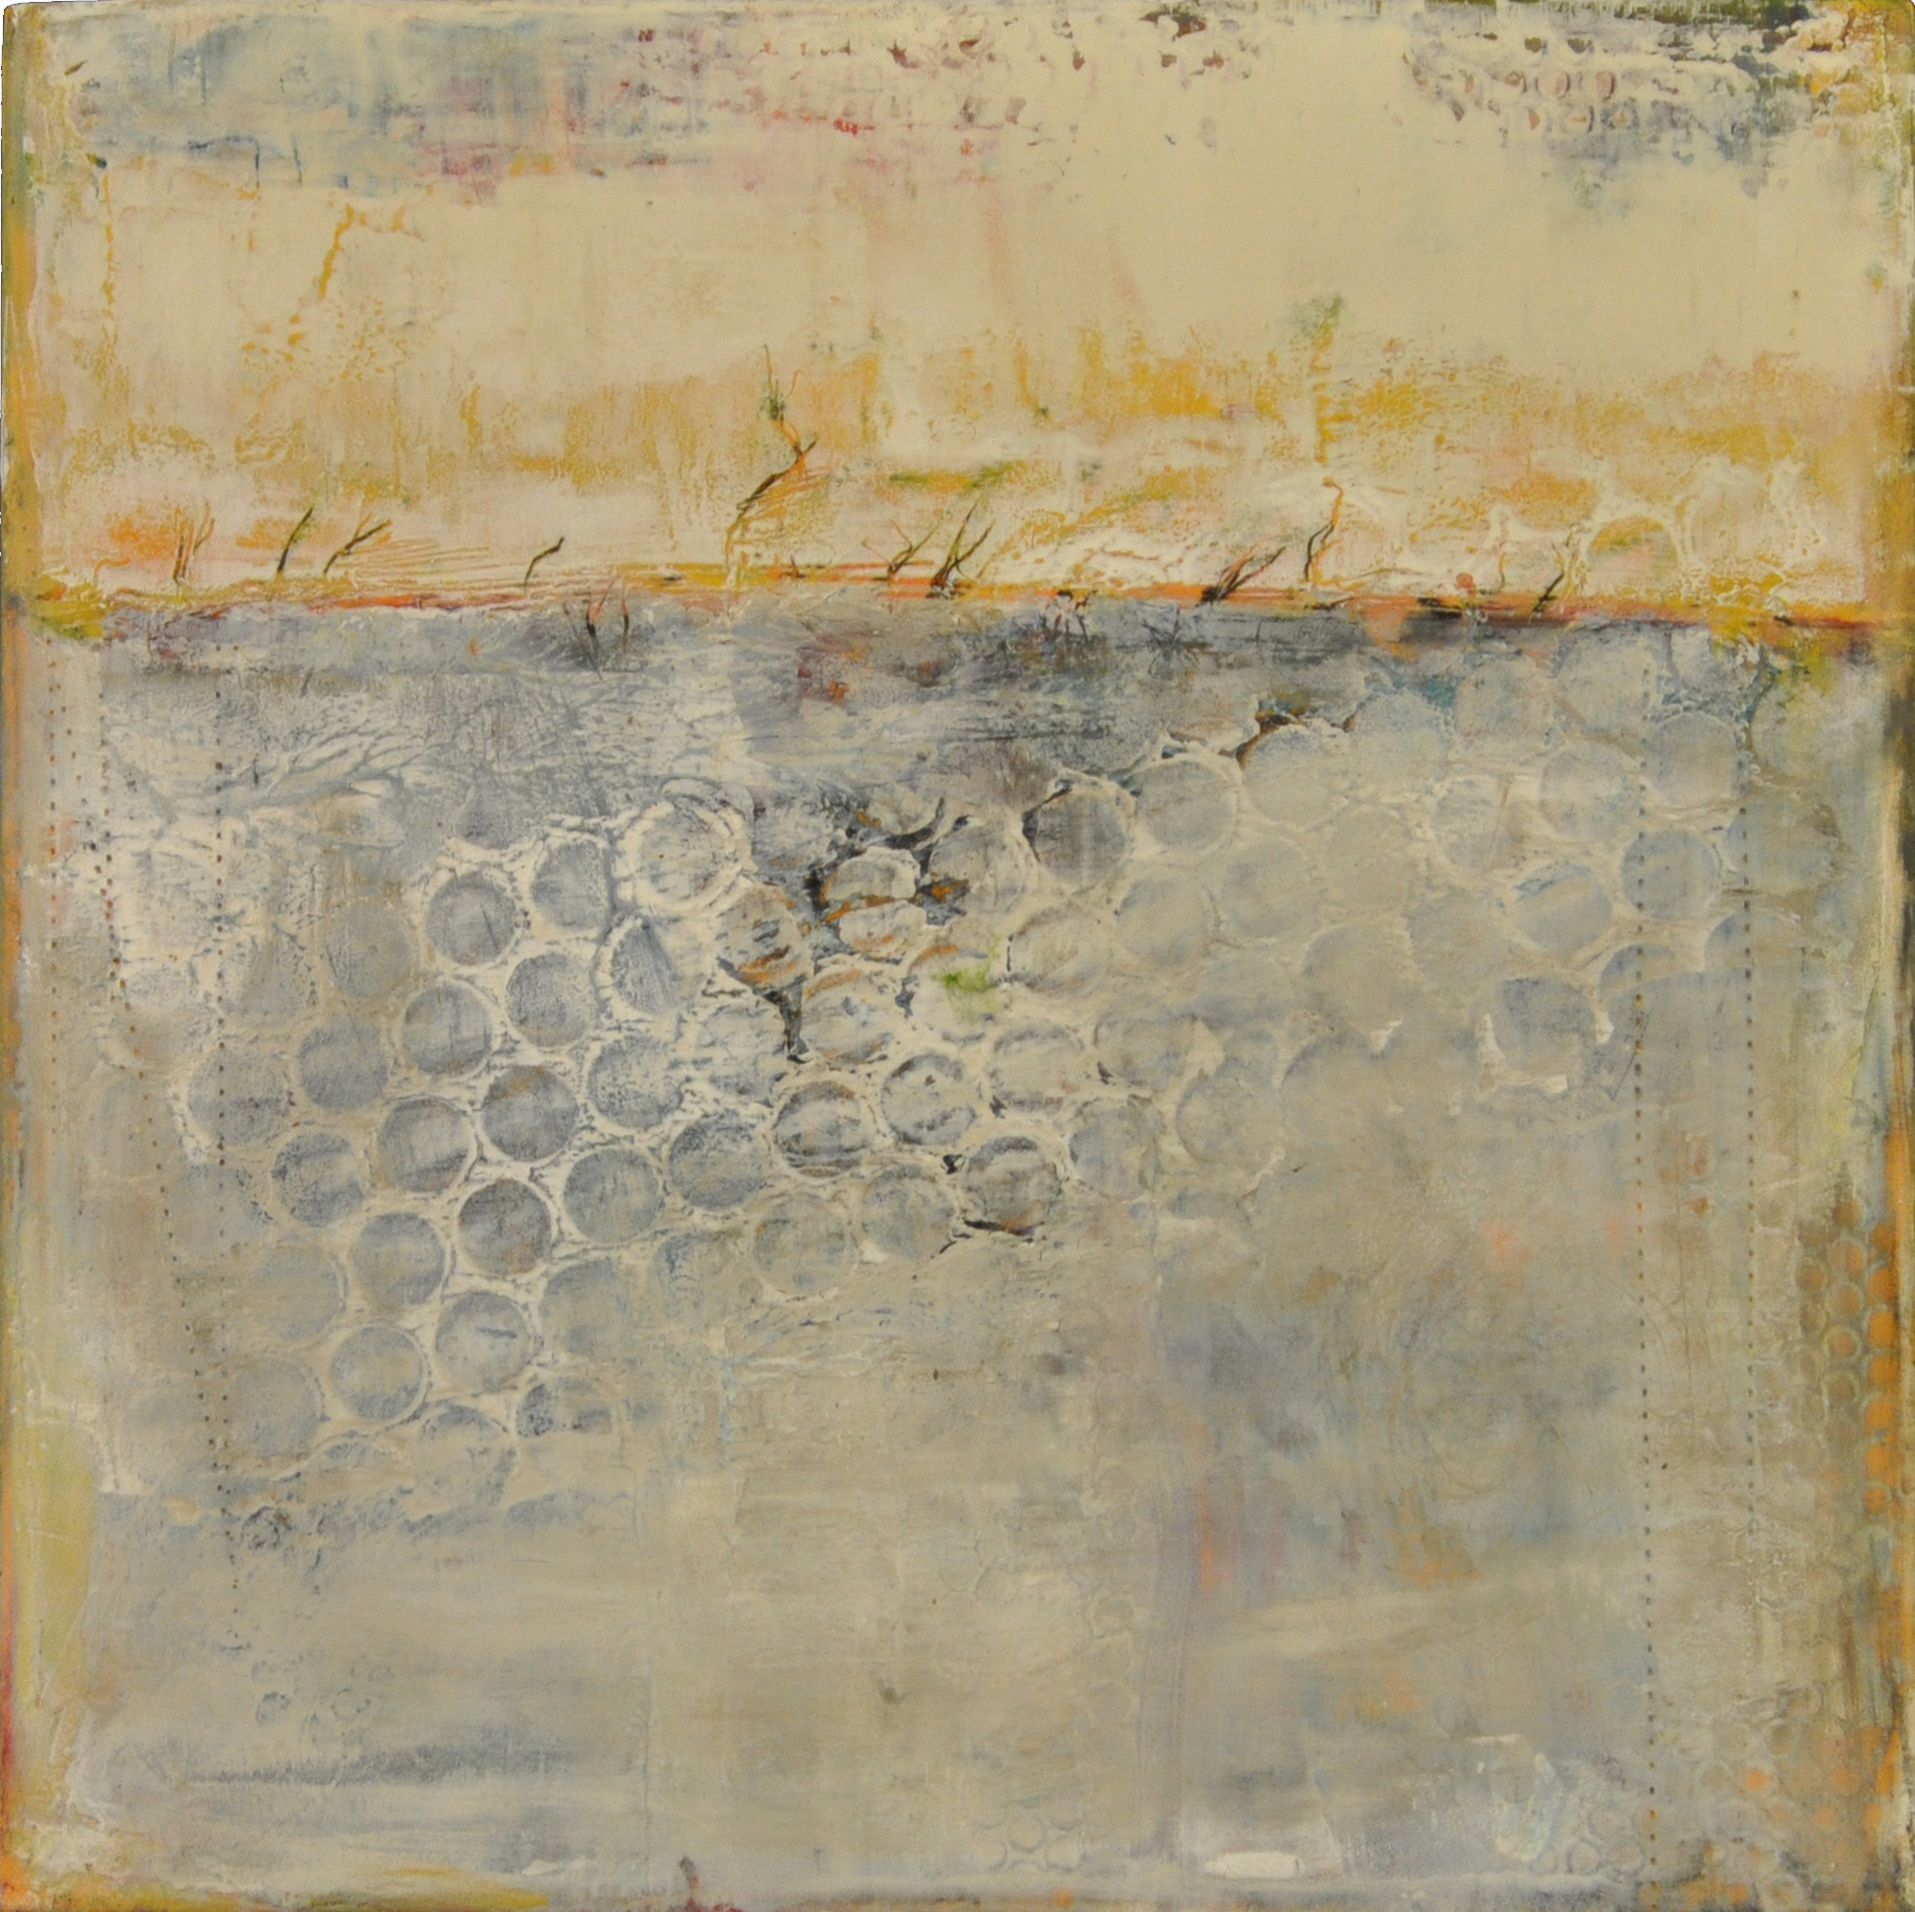 a new day   oil and cold wax 8 x 8 inches 2014 SOLD